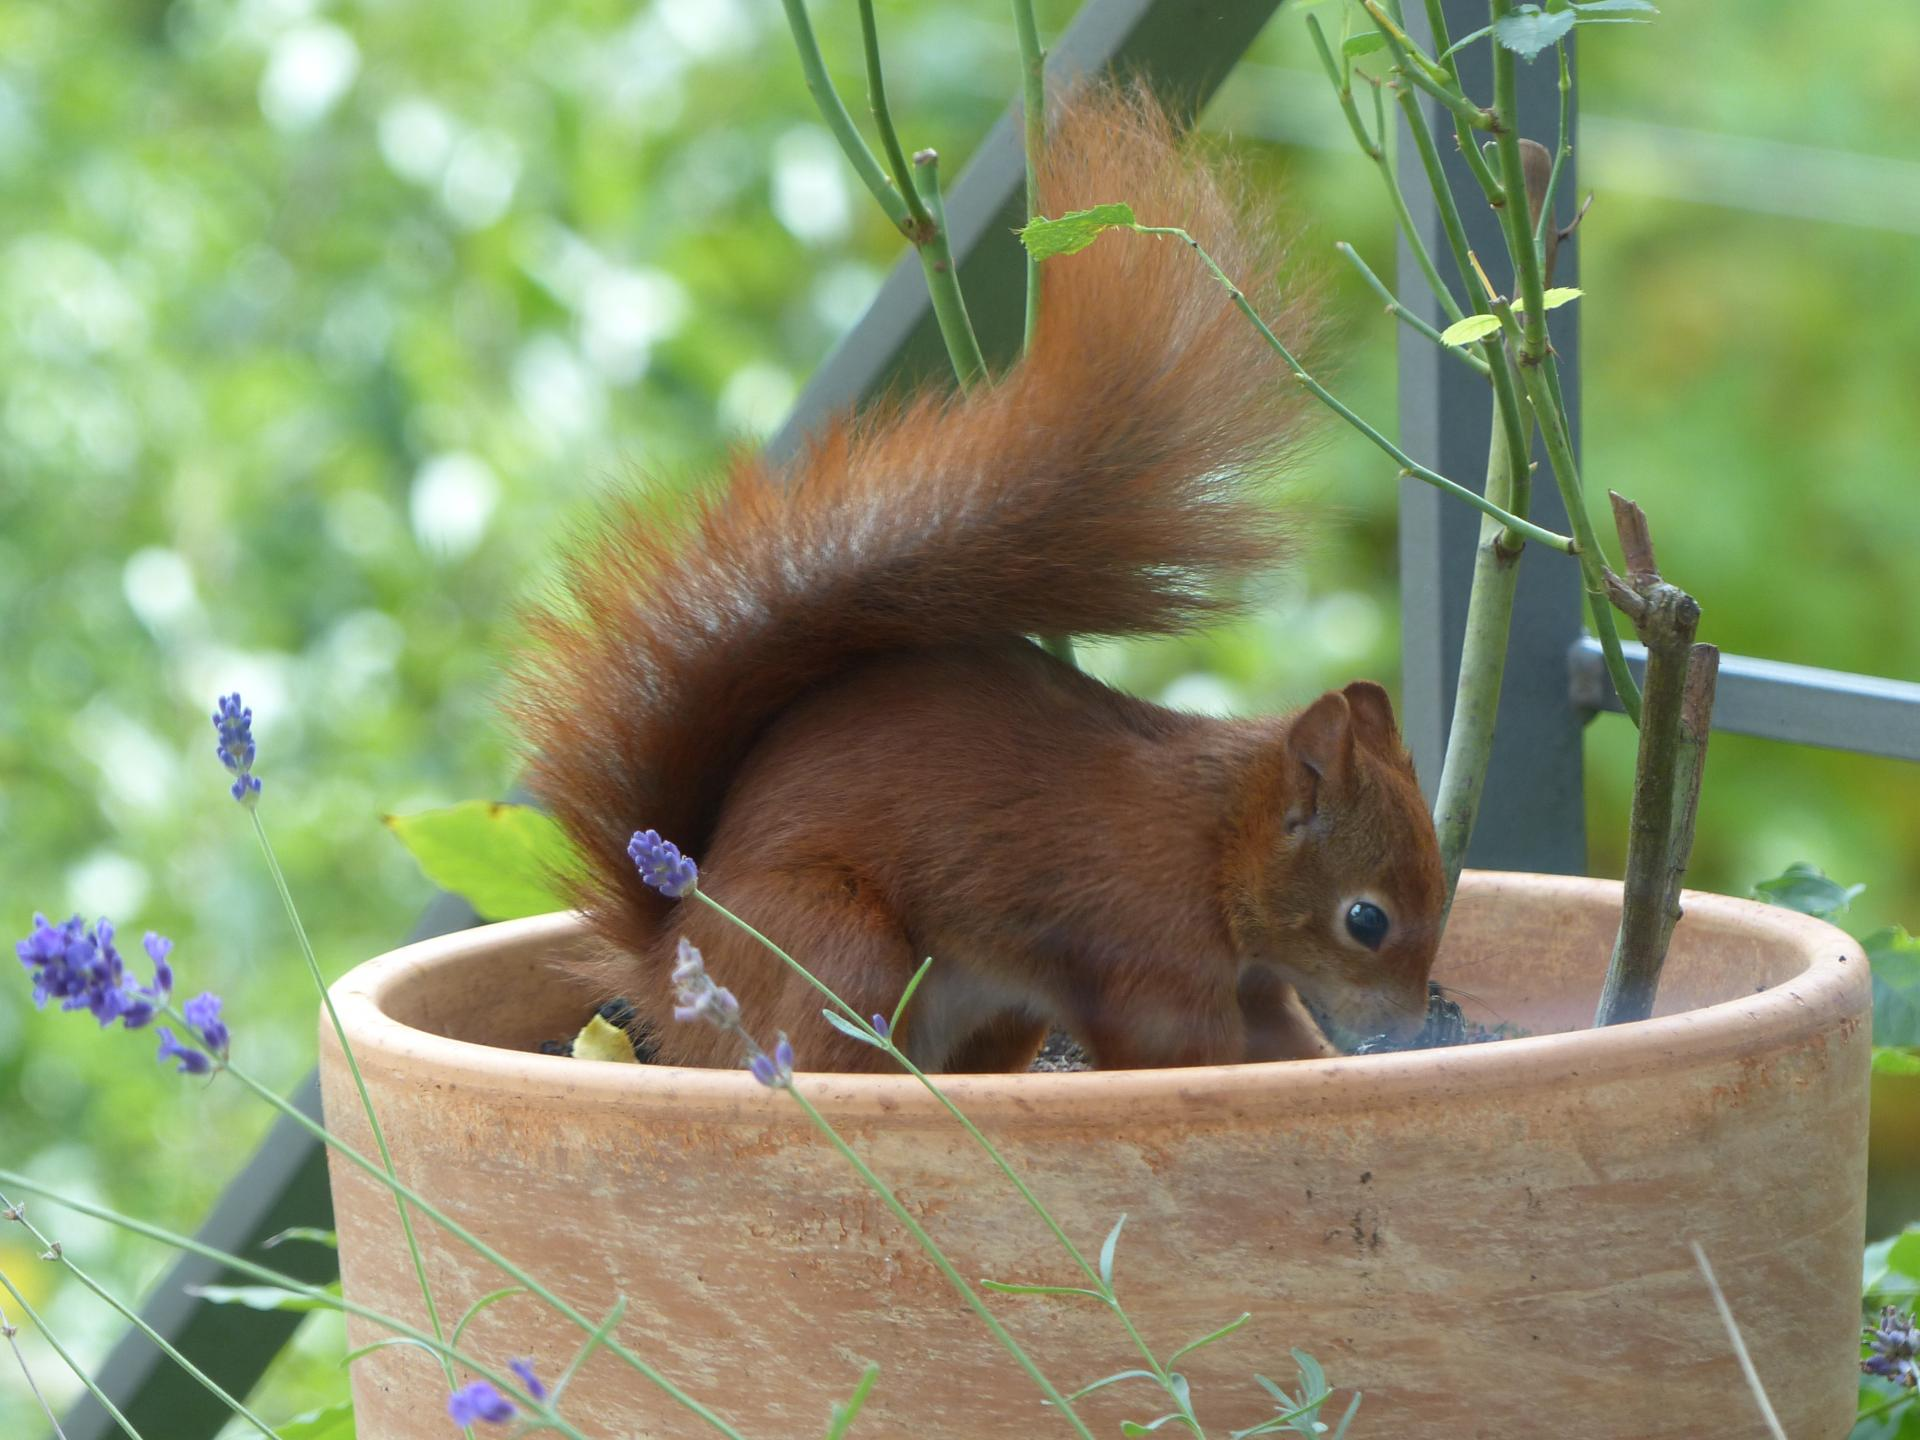 Hiding nuts for winter